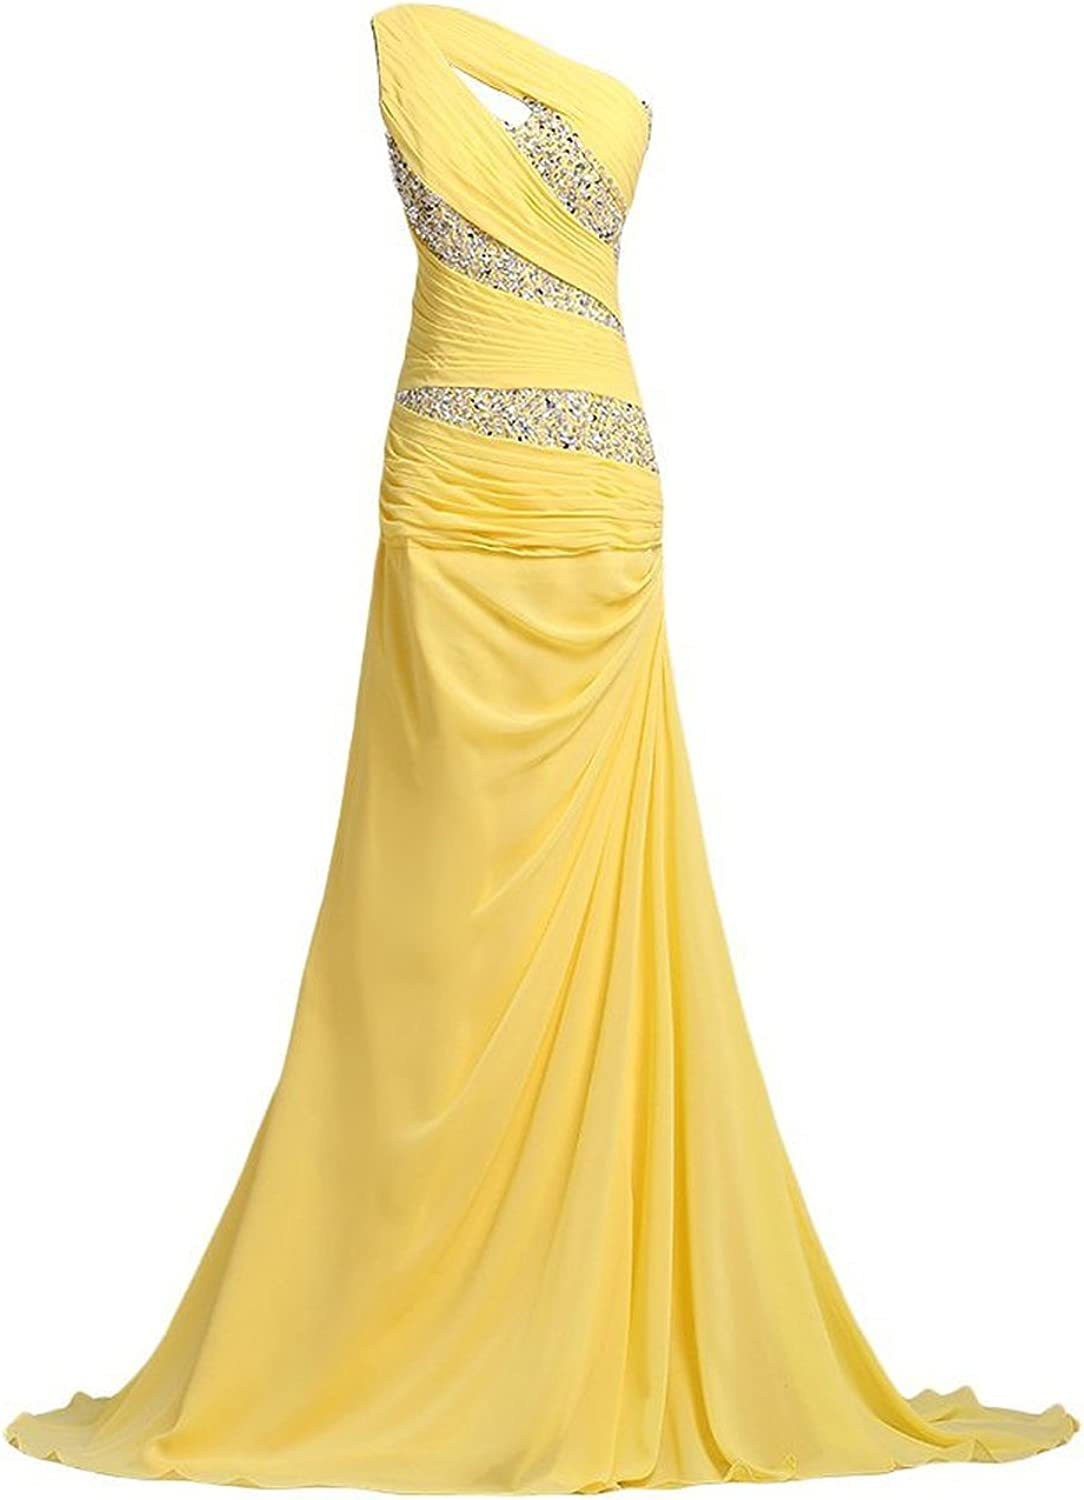 SDRESS Women's Beaded Sequines One Shoulder Sweep Train Prom Homecoming Dress